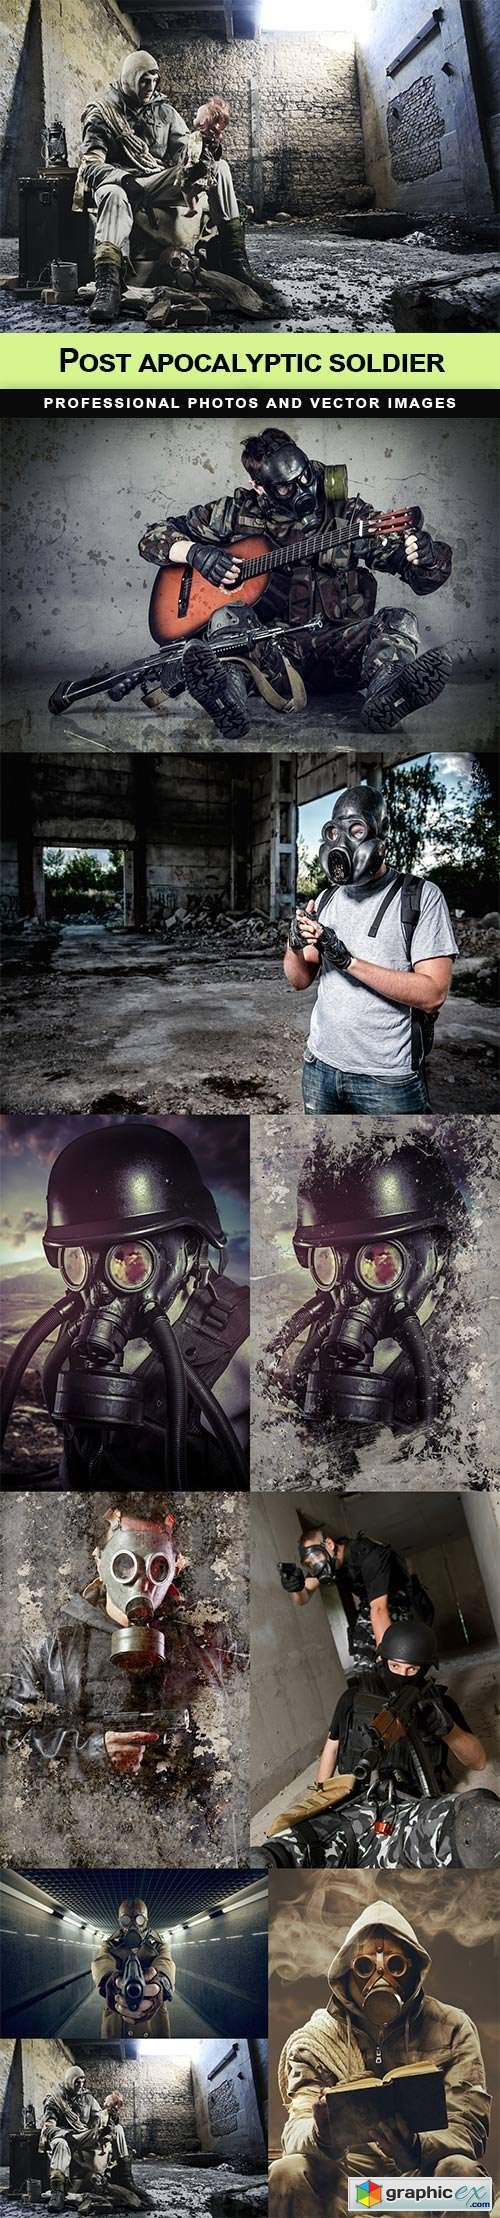 Post apocalyptic soldier - 9 UHQ JPEG